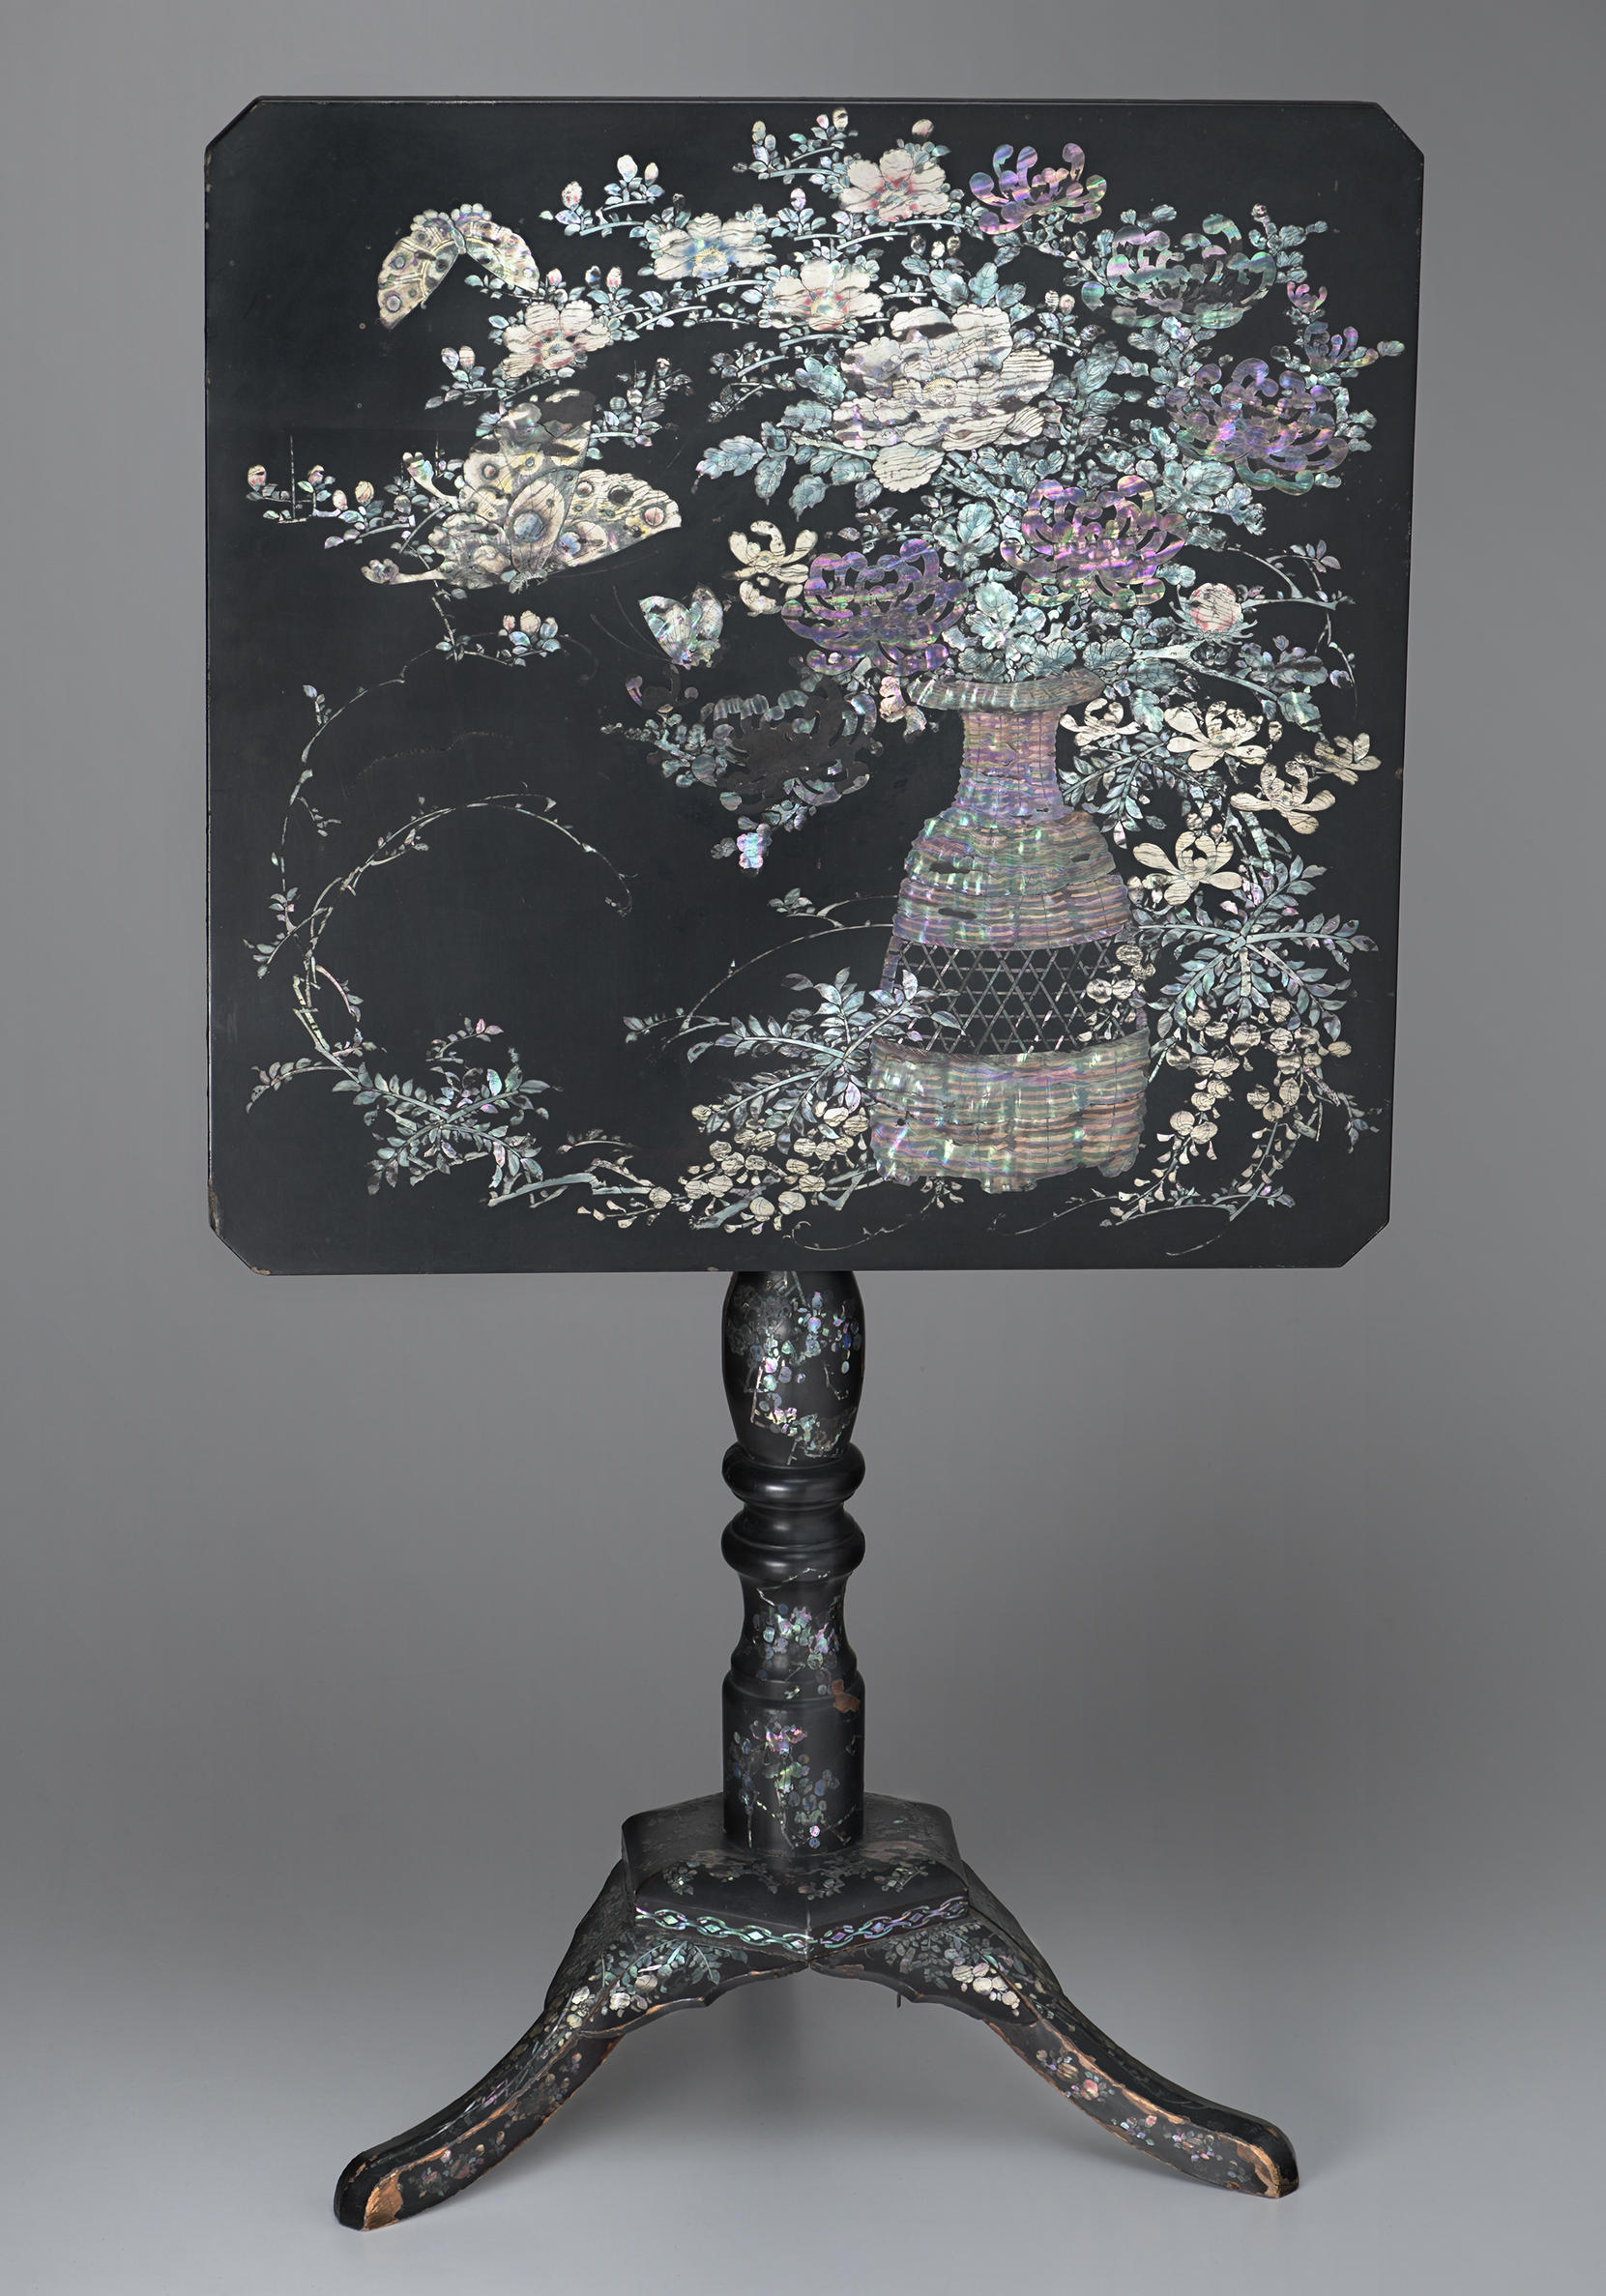 Japanese, Tip-Top Table, mid-19th century. Lacquer inlaid with mother-of-pearl